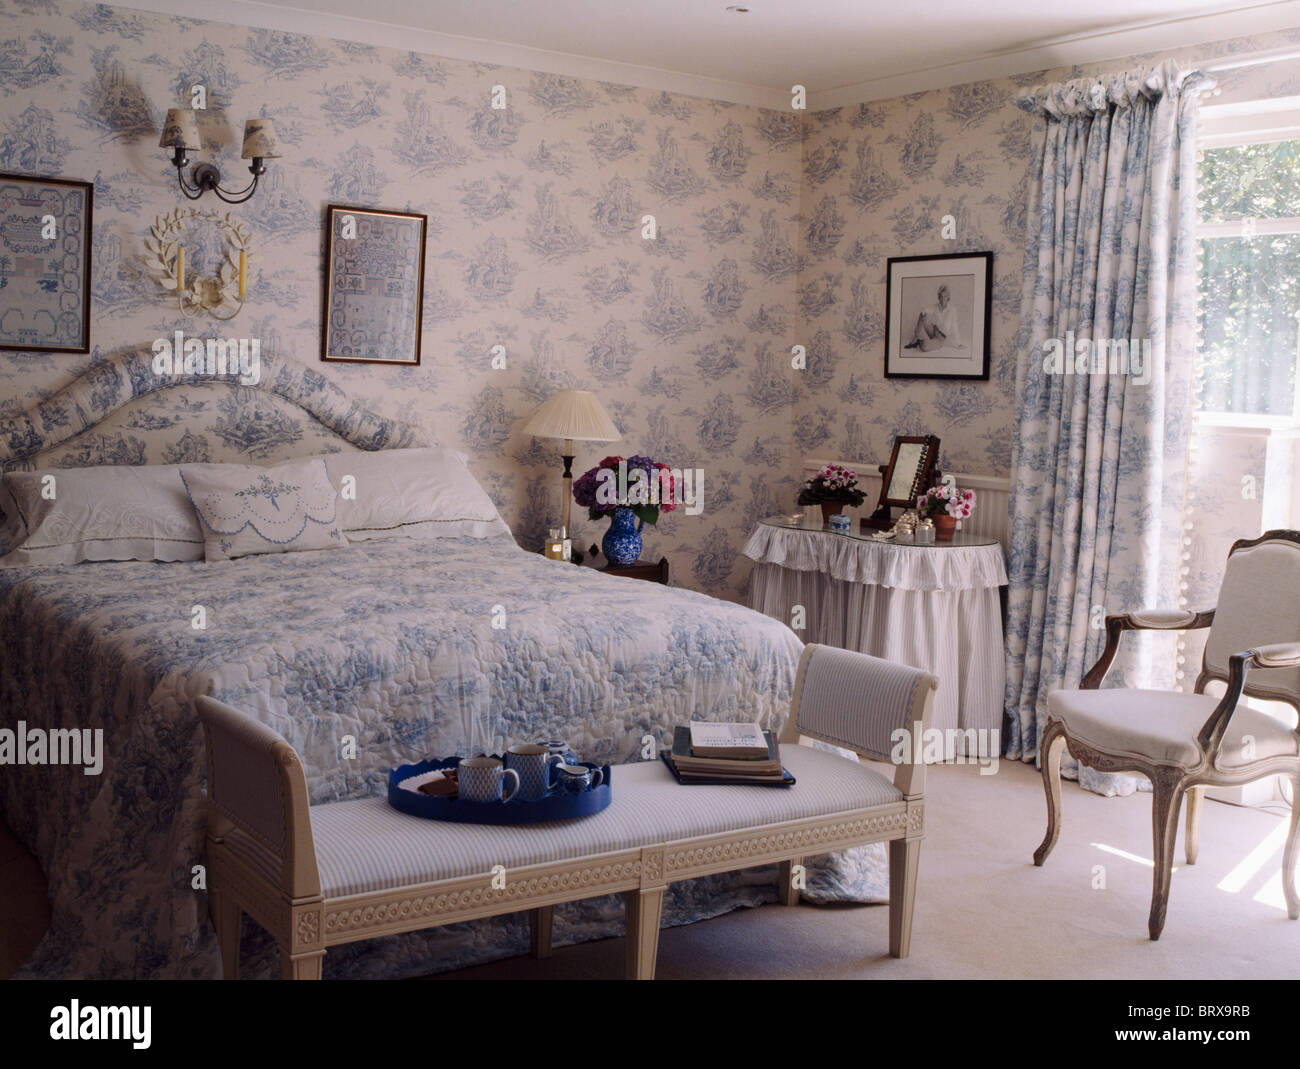 Blue White Toile De Jouy Wallpaper With Matching Curtains And Stock